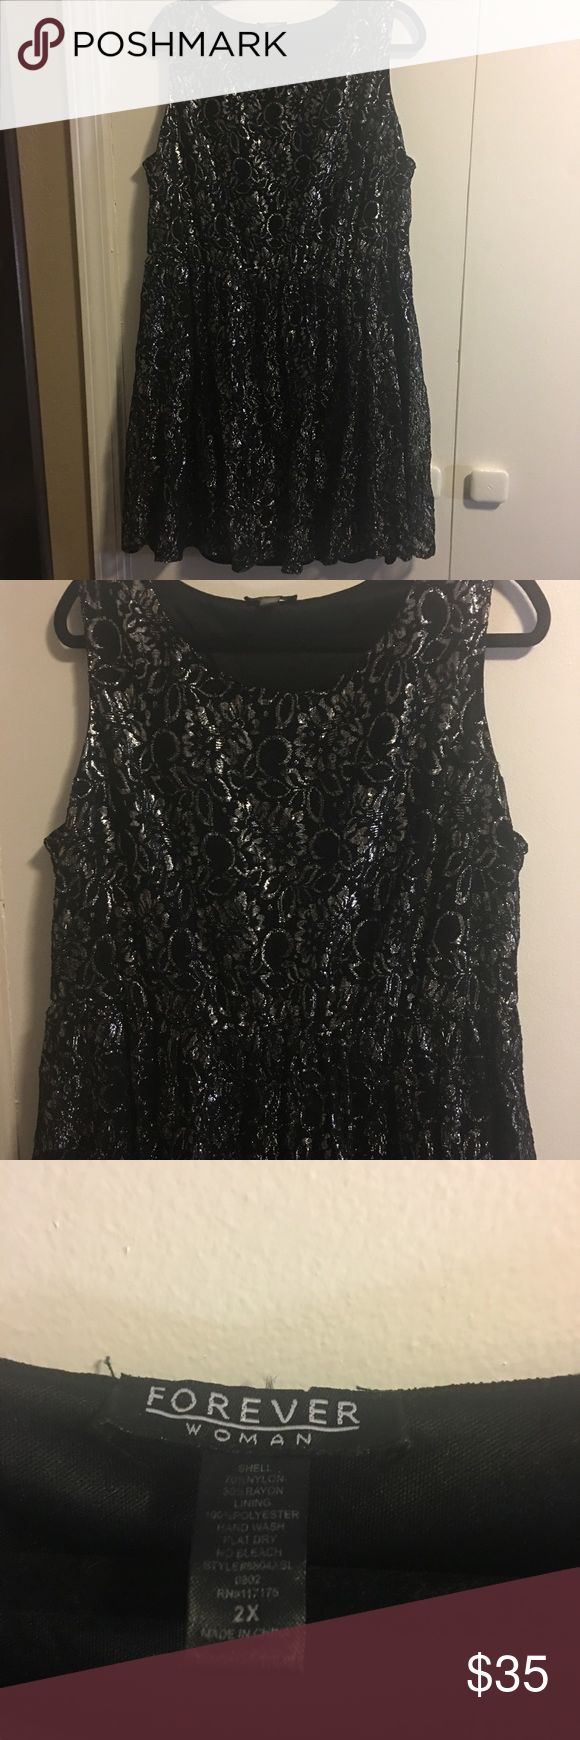 Forever Woman Plus Size Dress Beautiful plus size shimmer dress, black with silver. The brand is Forever Woman, and is size 2X. EUC. Forever Woman Dresses